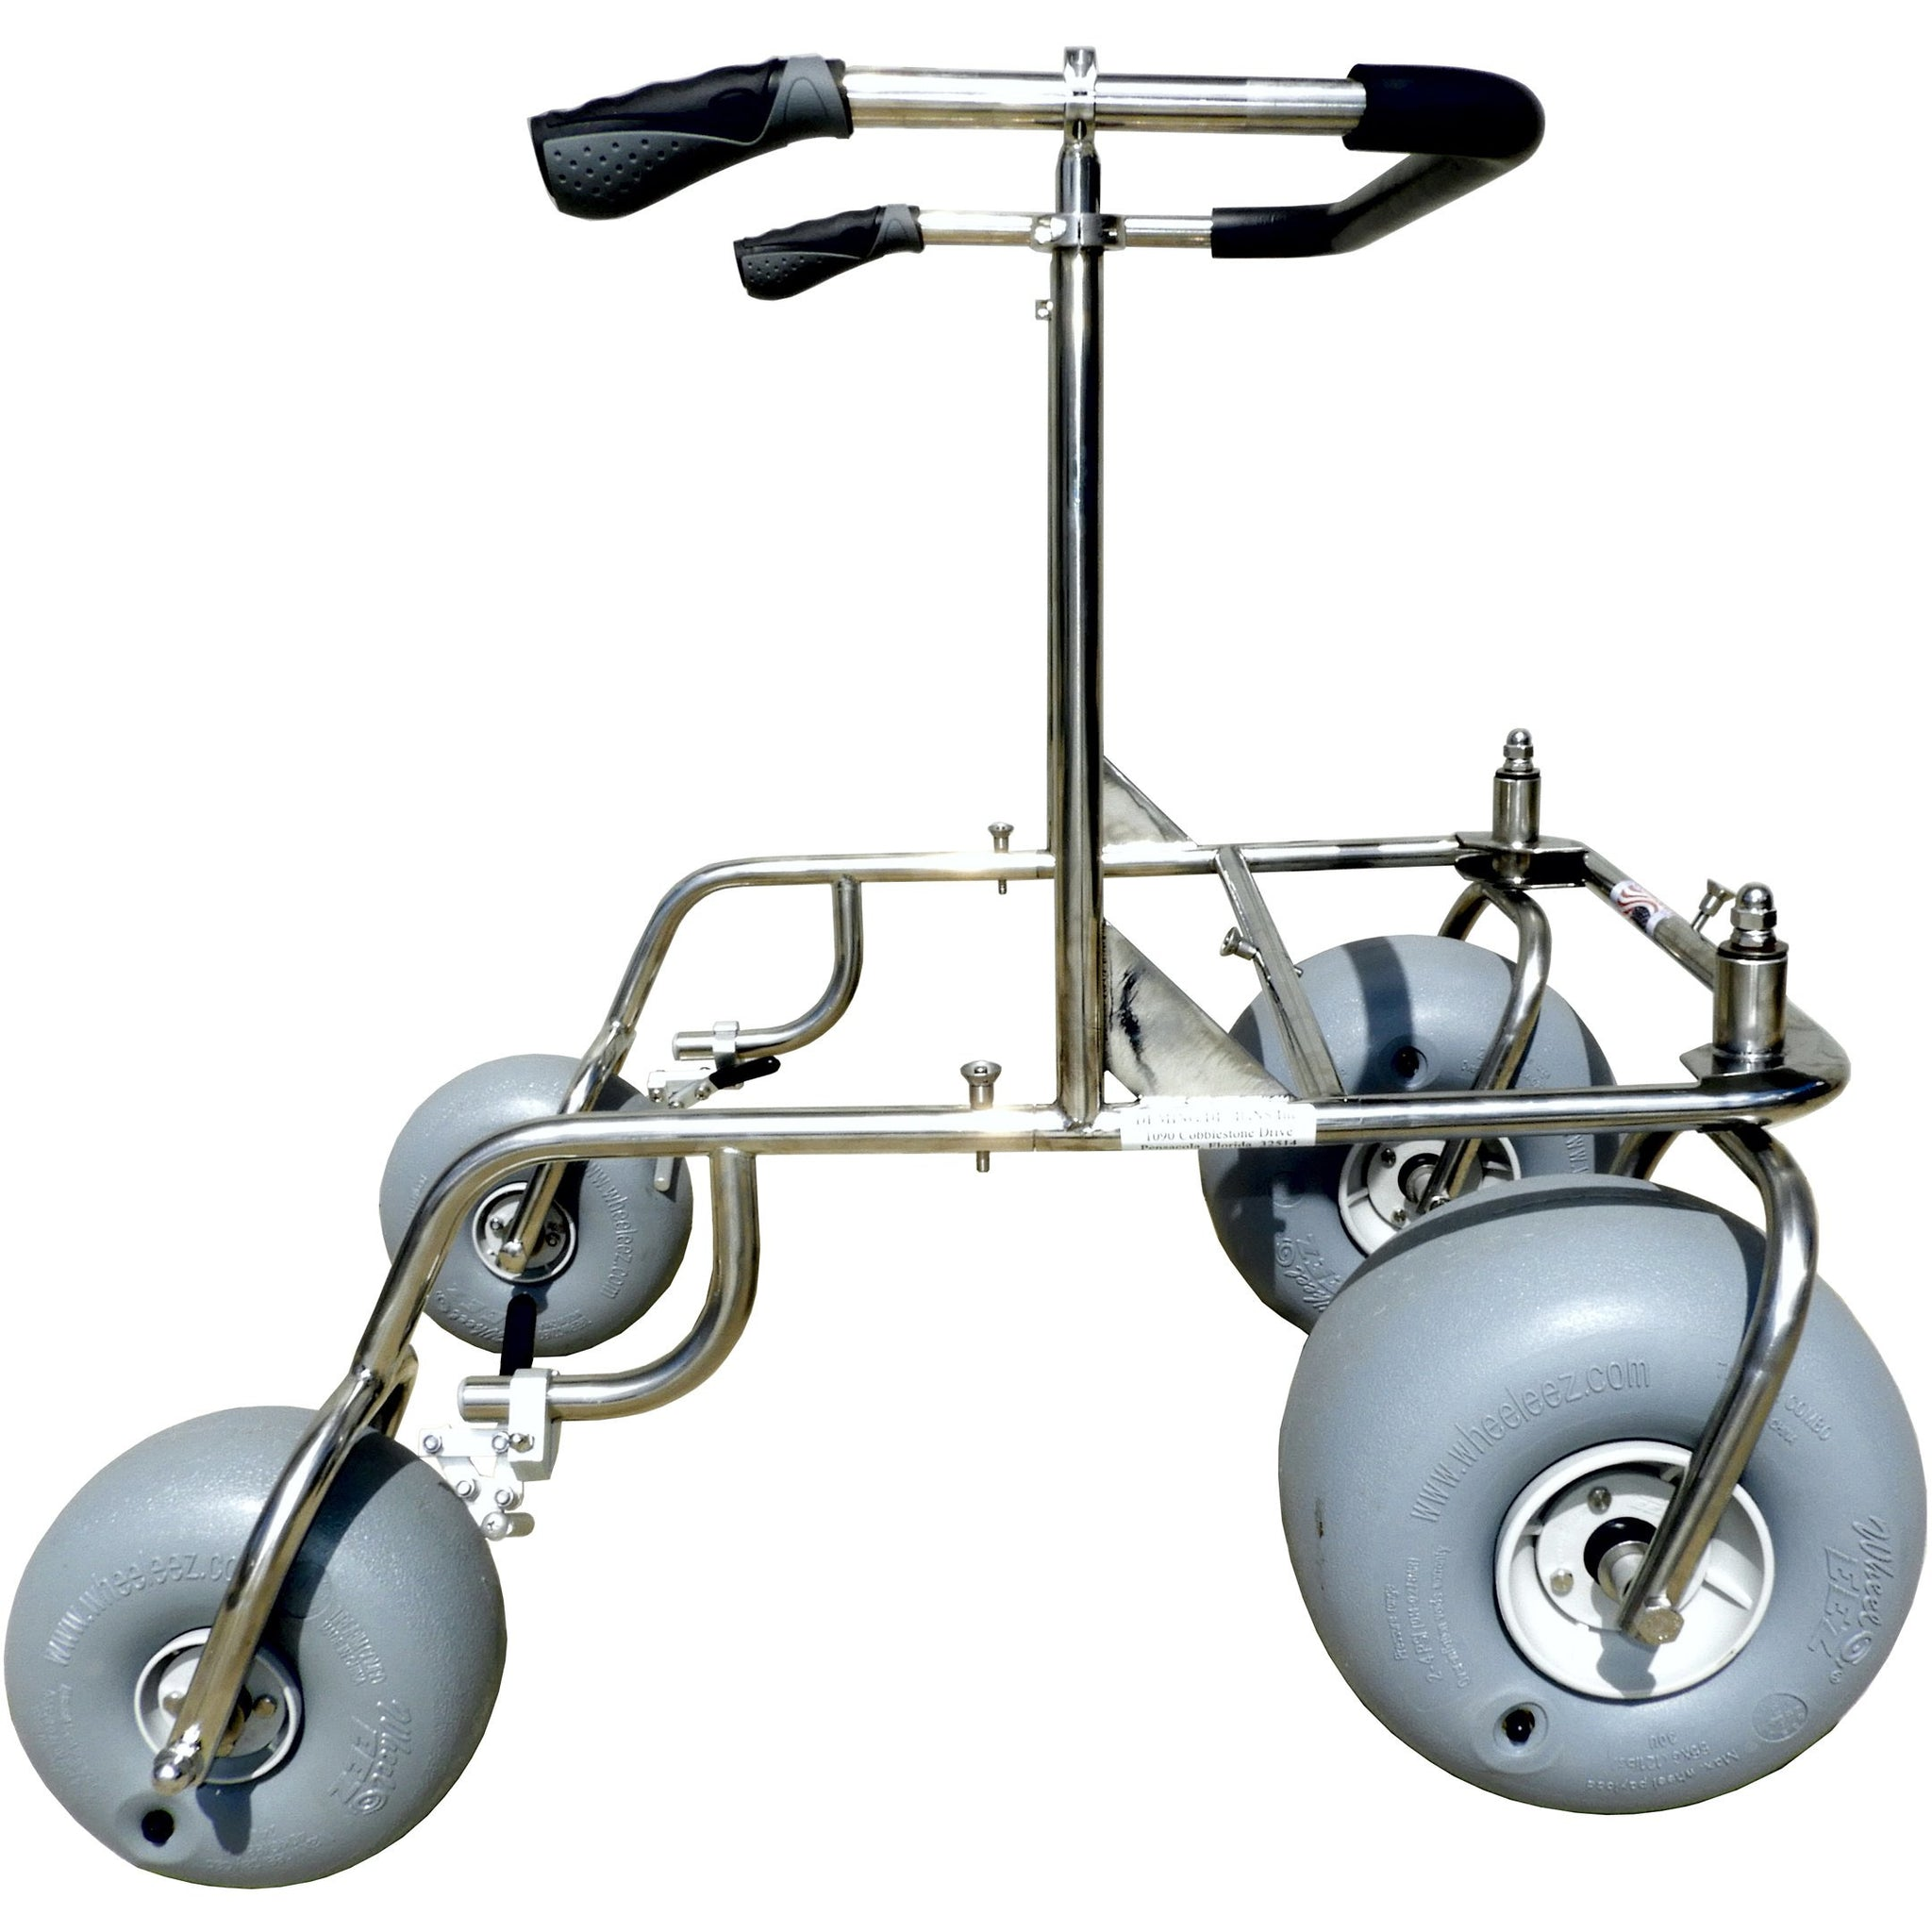 Debug Mobility: Foldable Lightweight All-Terrain Walker - Stainless Steel